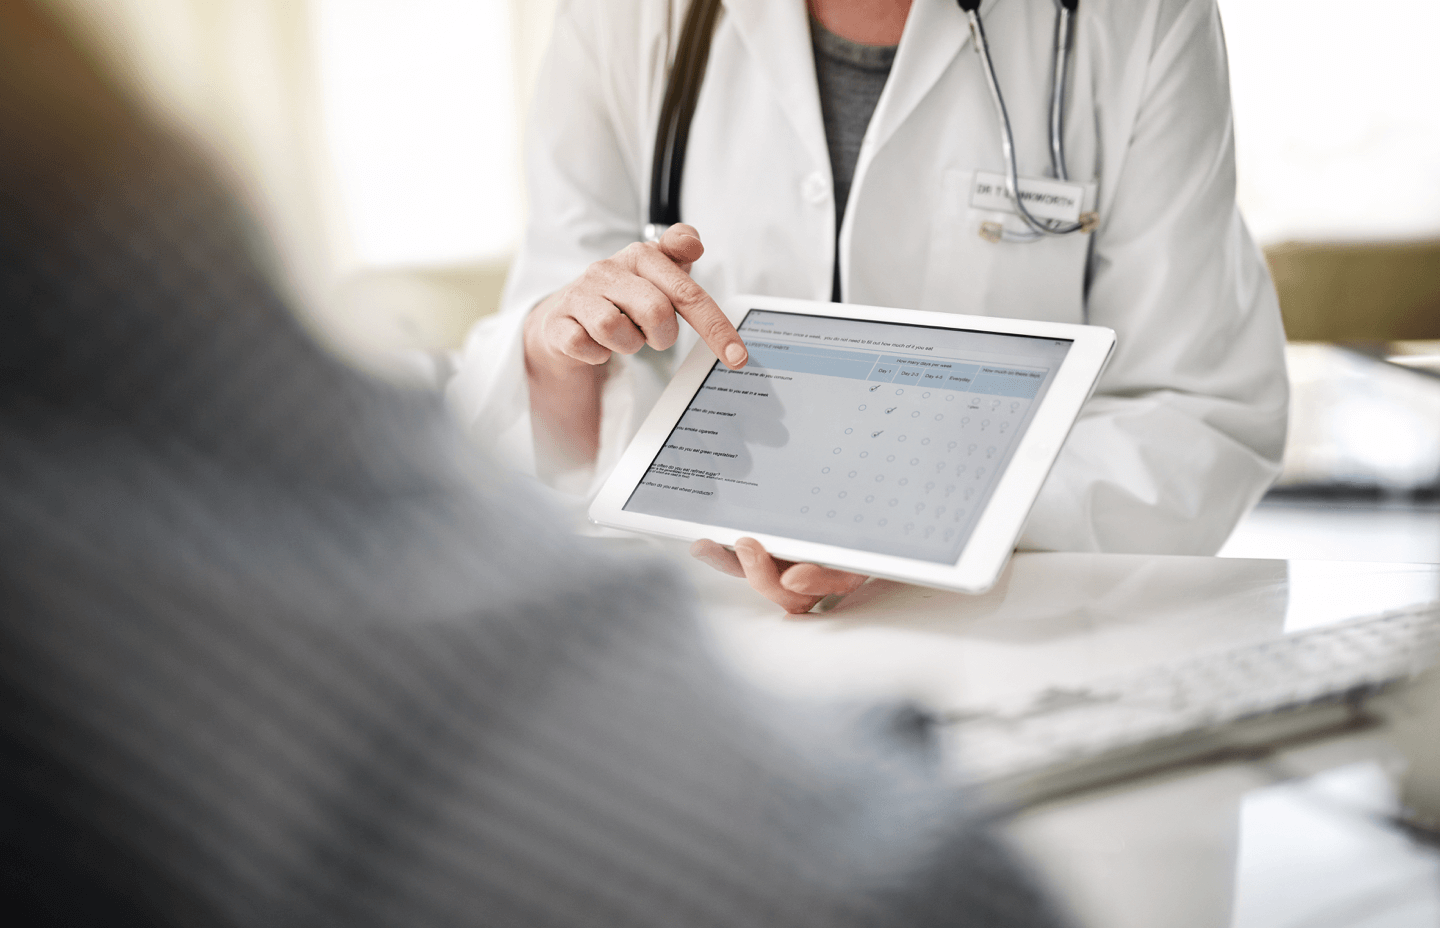 Doctor holding device with online patient intake form